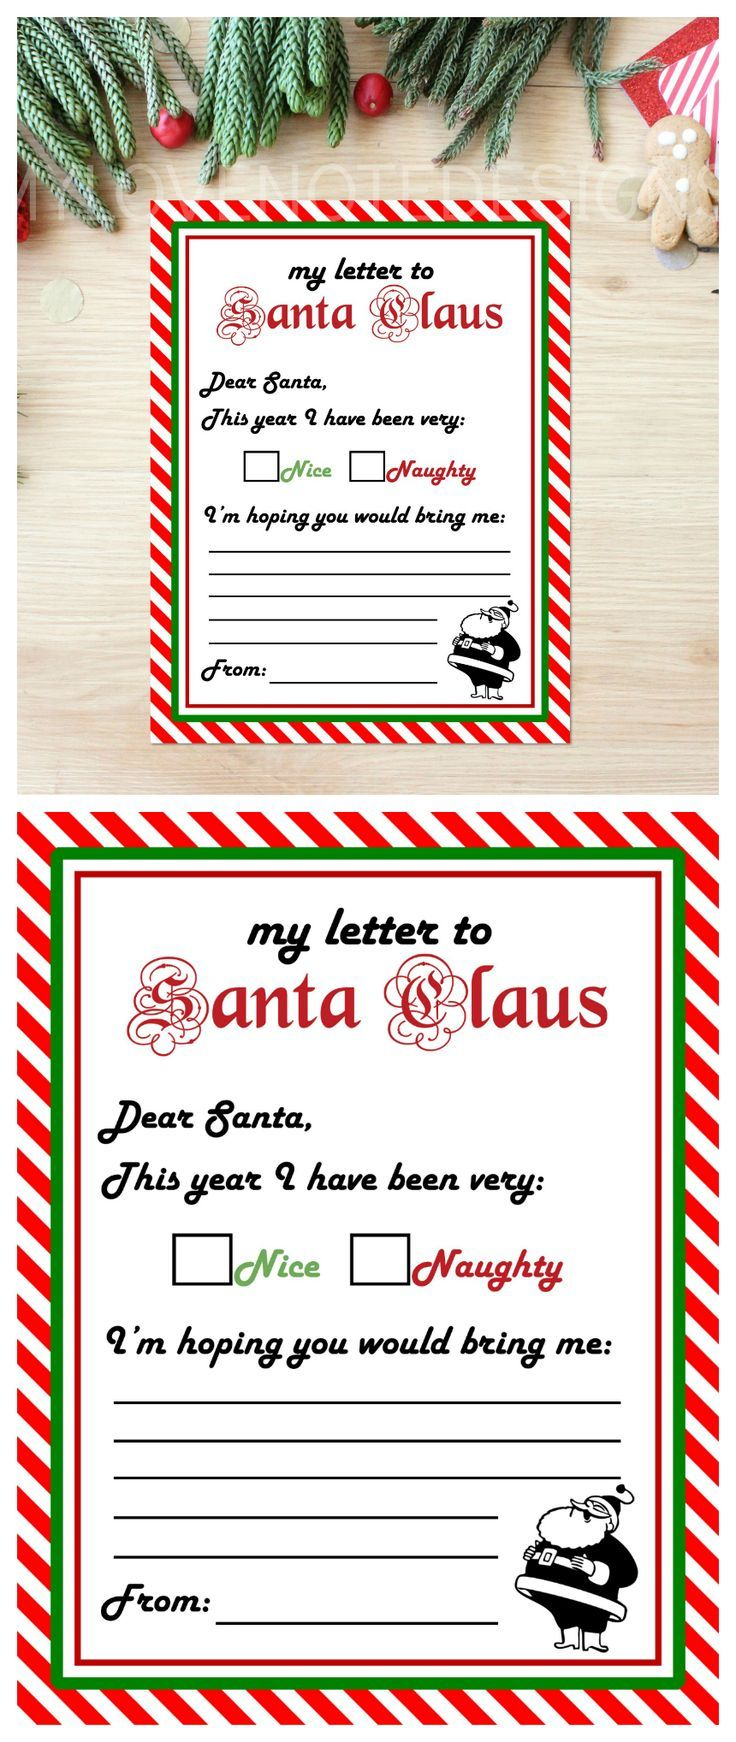 Letter to santa claus free printable santa and holidays free printable santa claus letter spiritdancerdesigns Image collections